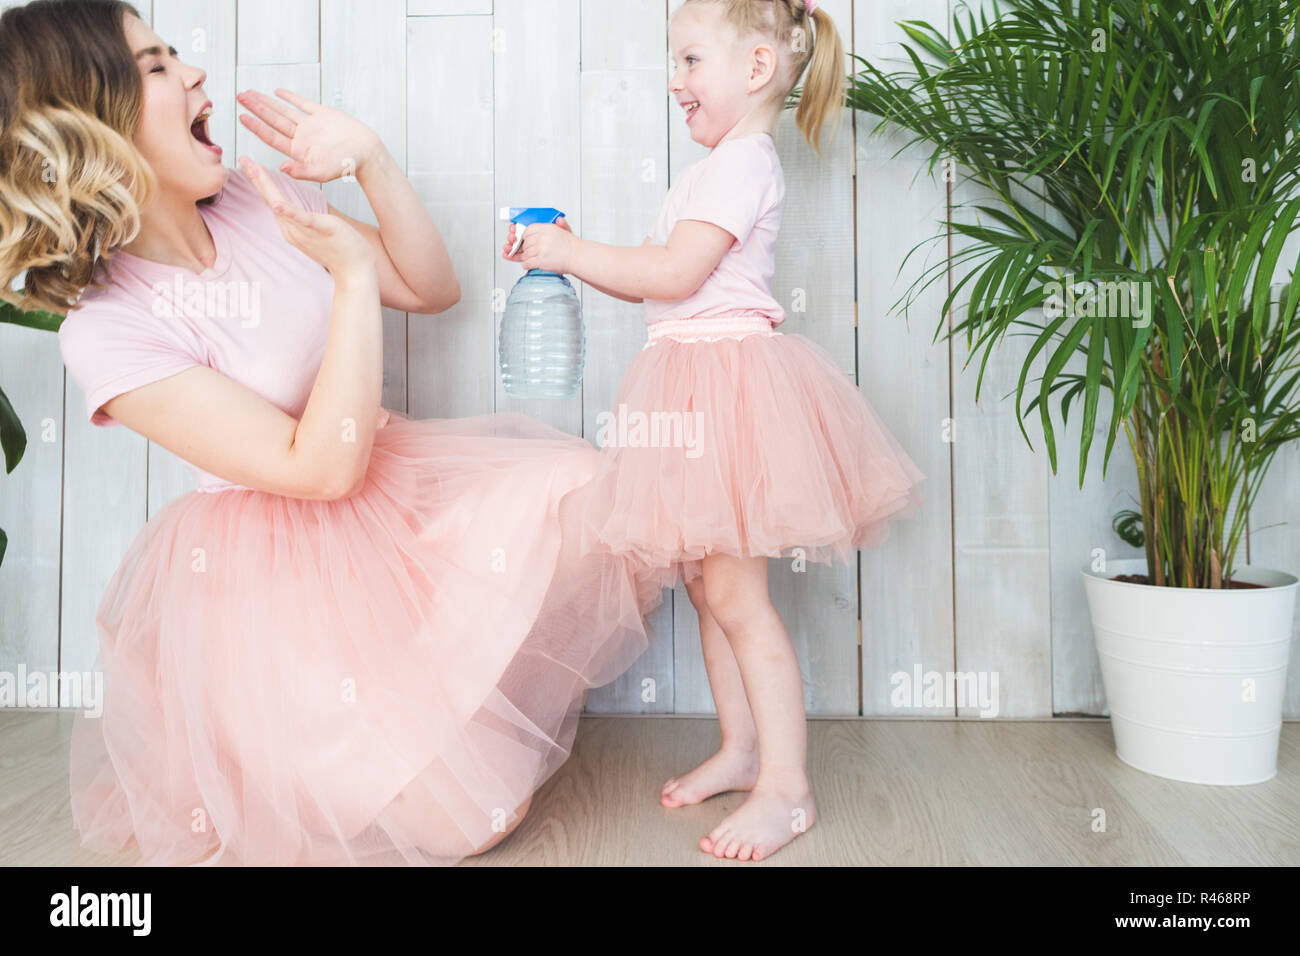 Cute little girl and her mom playing next to plants in pots on a white background. - Stock Image